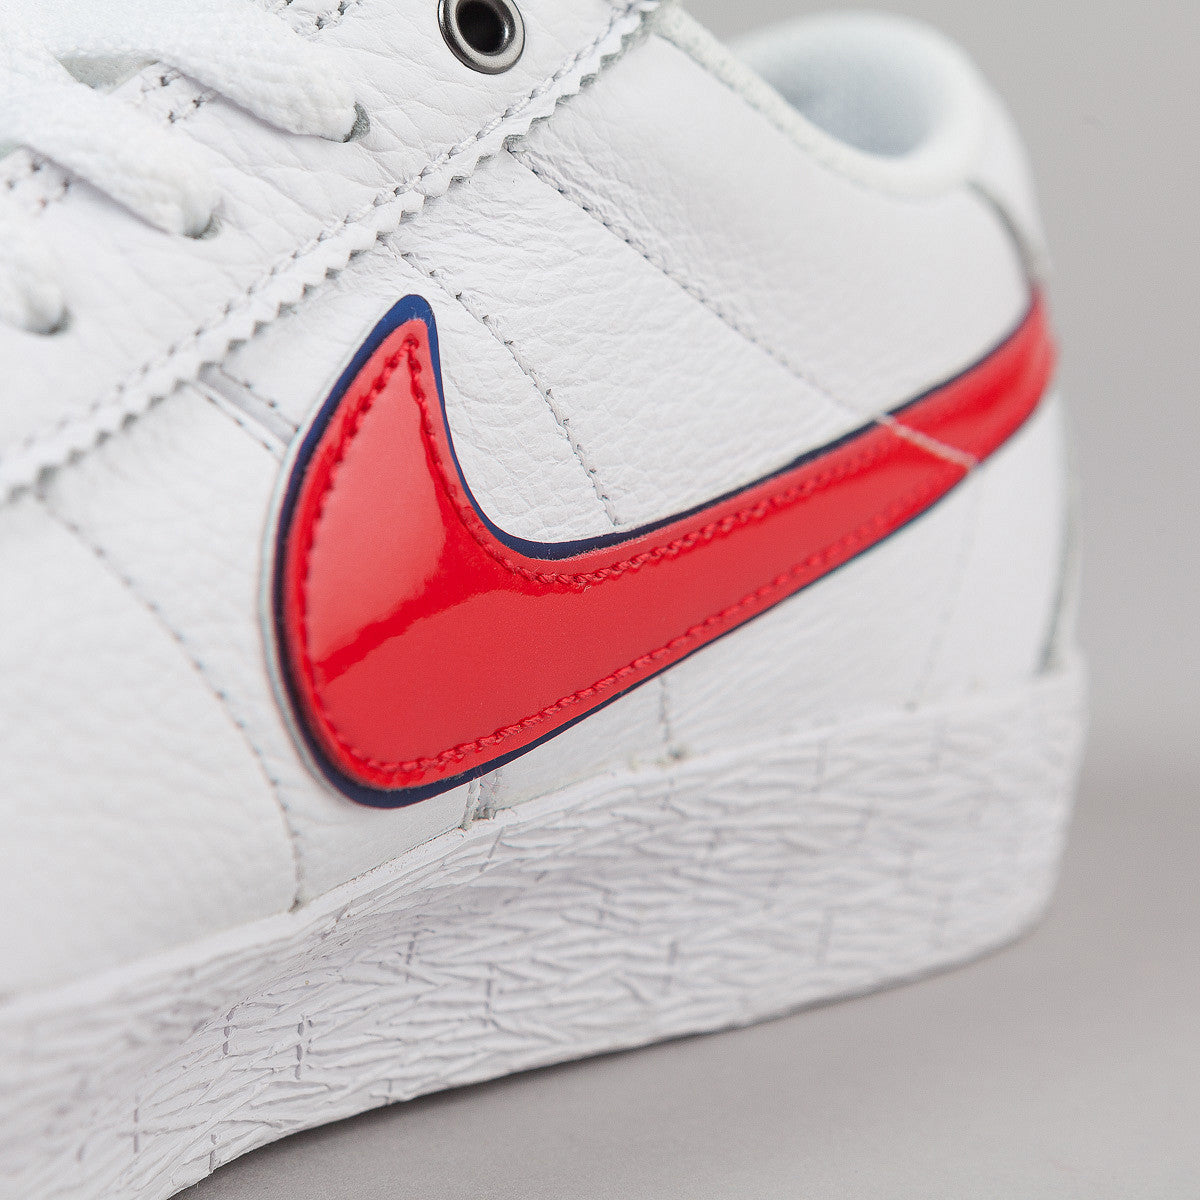 Nike SB Bruin QS Premium Shoes - White / University Red - Blue Spark